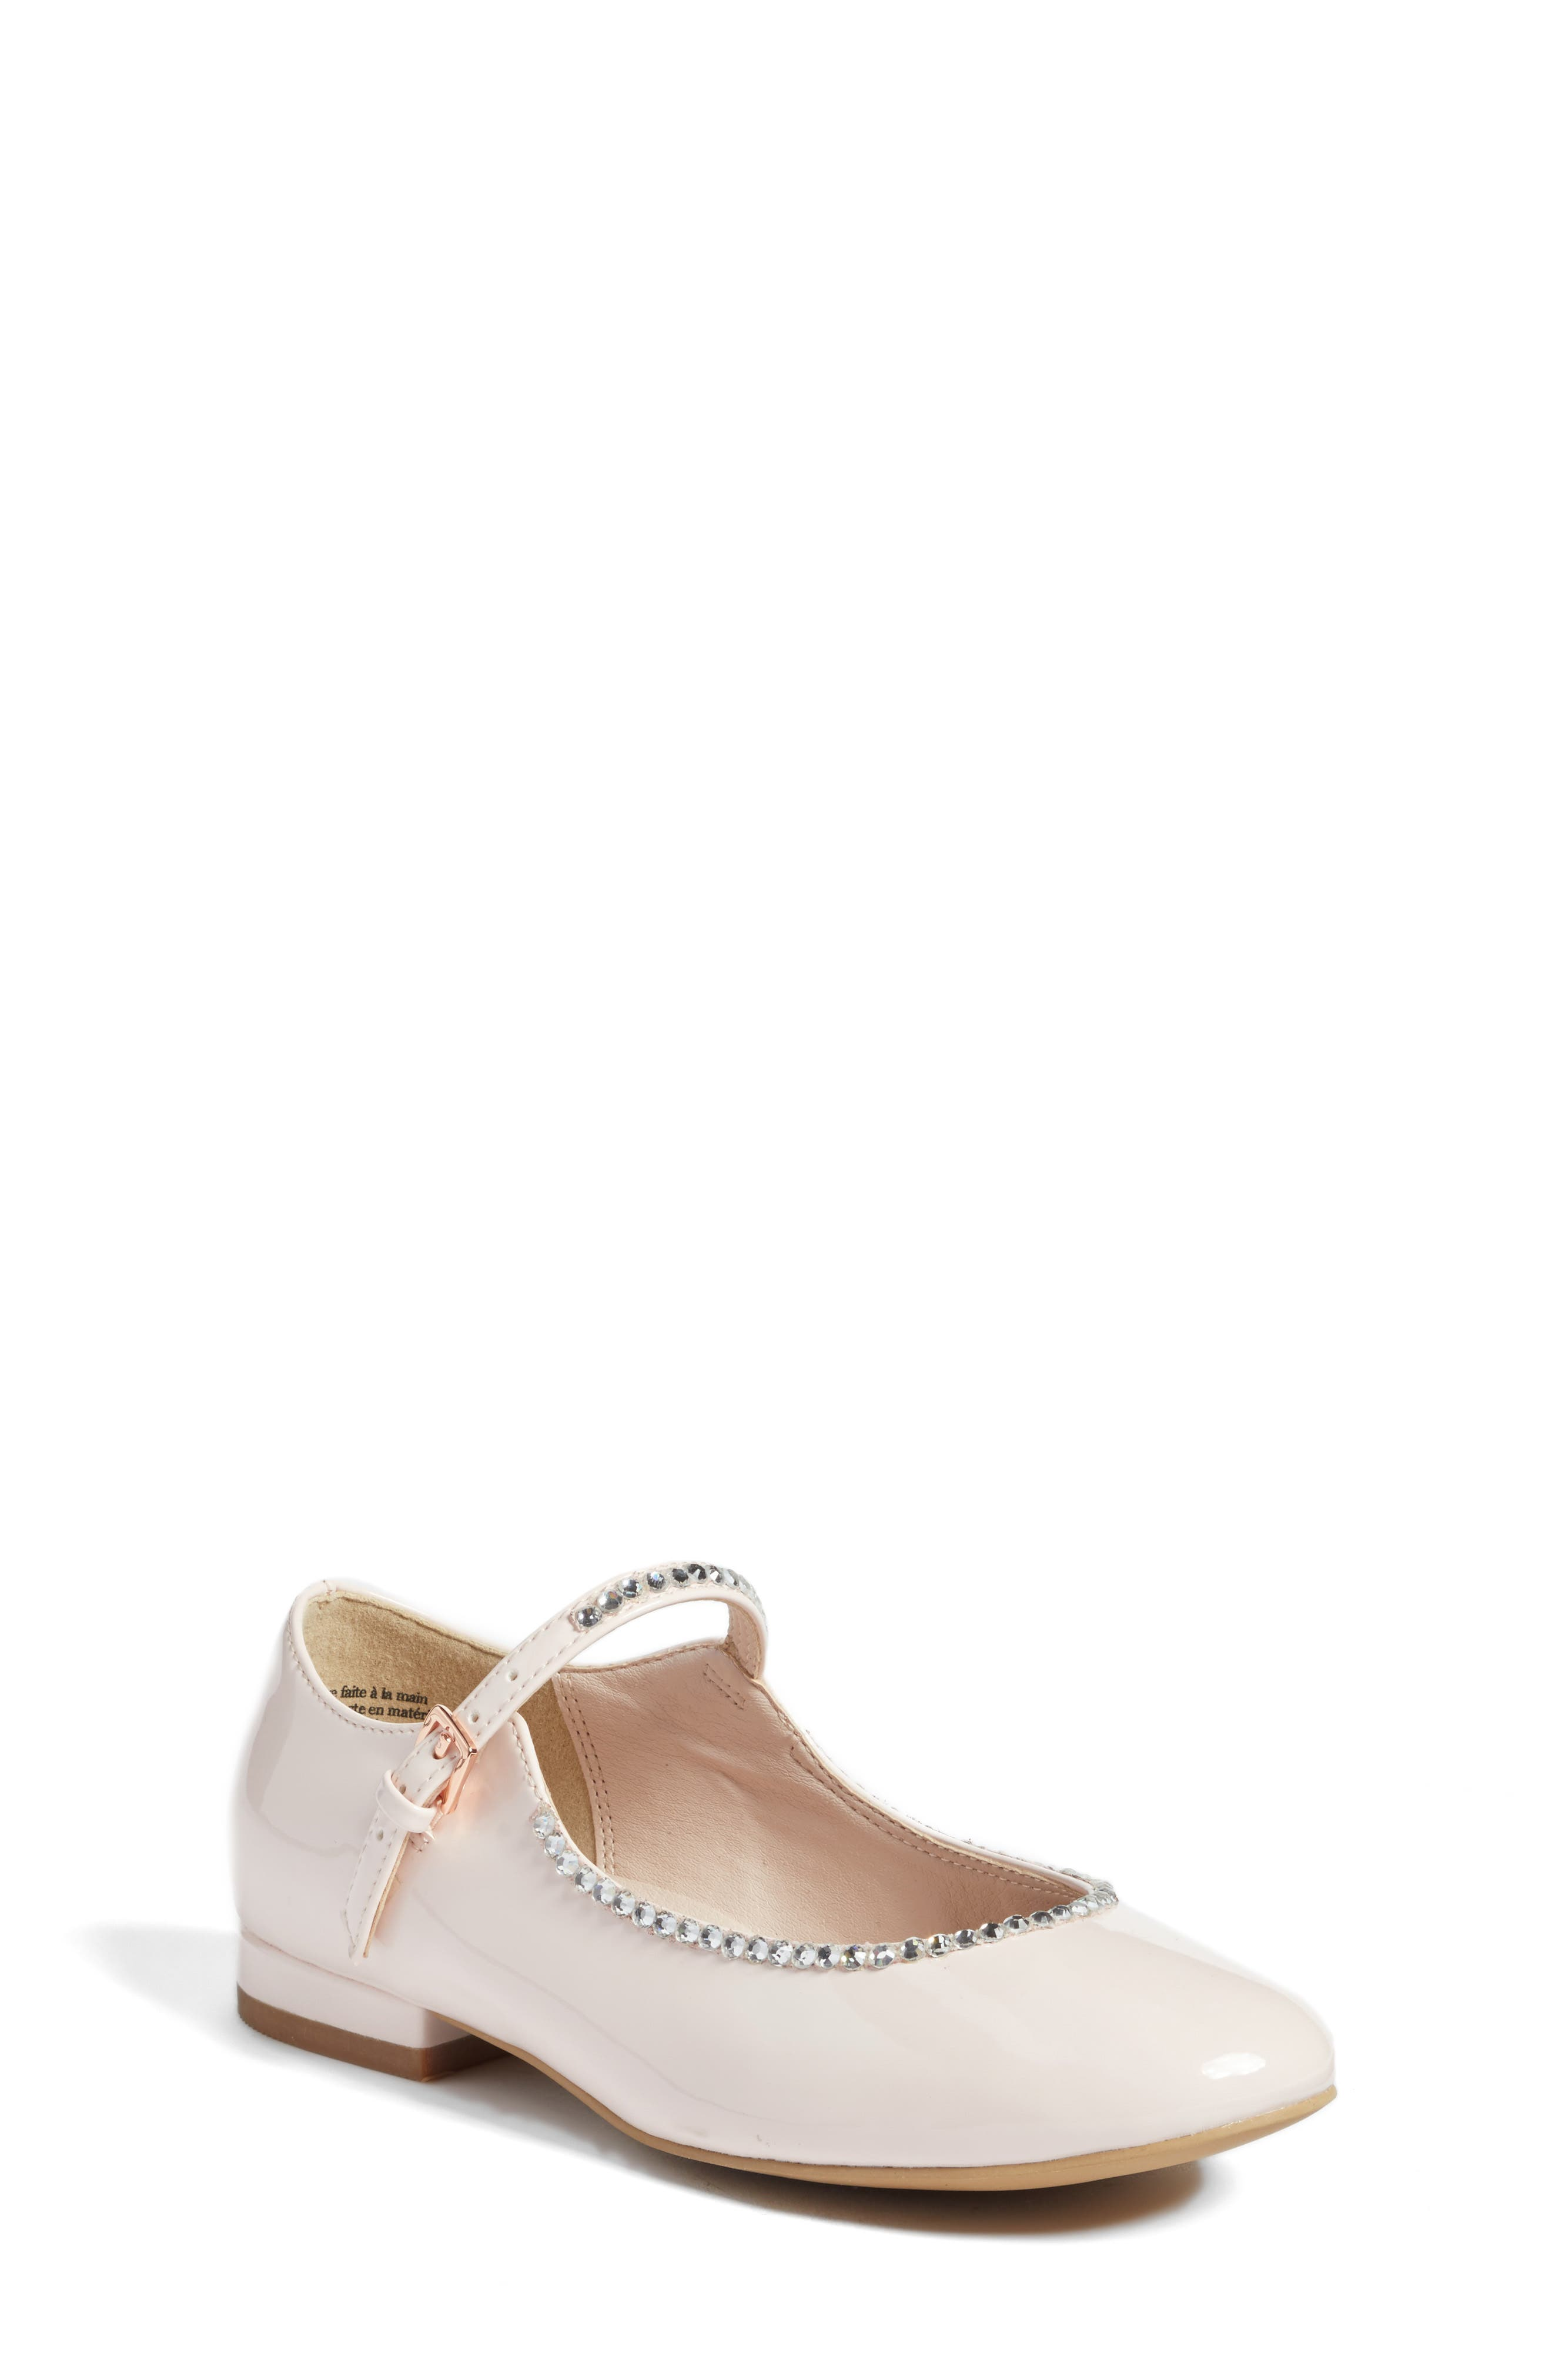 Harlow Embellished Mary Jane,                             Main thumbnail 1, color,                             Pale Pink Faux Patent